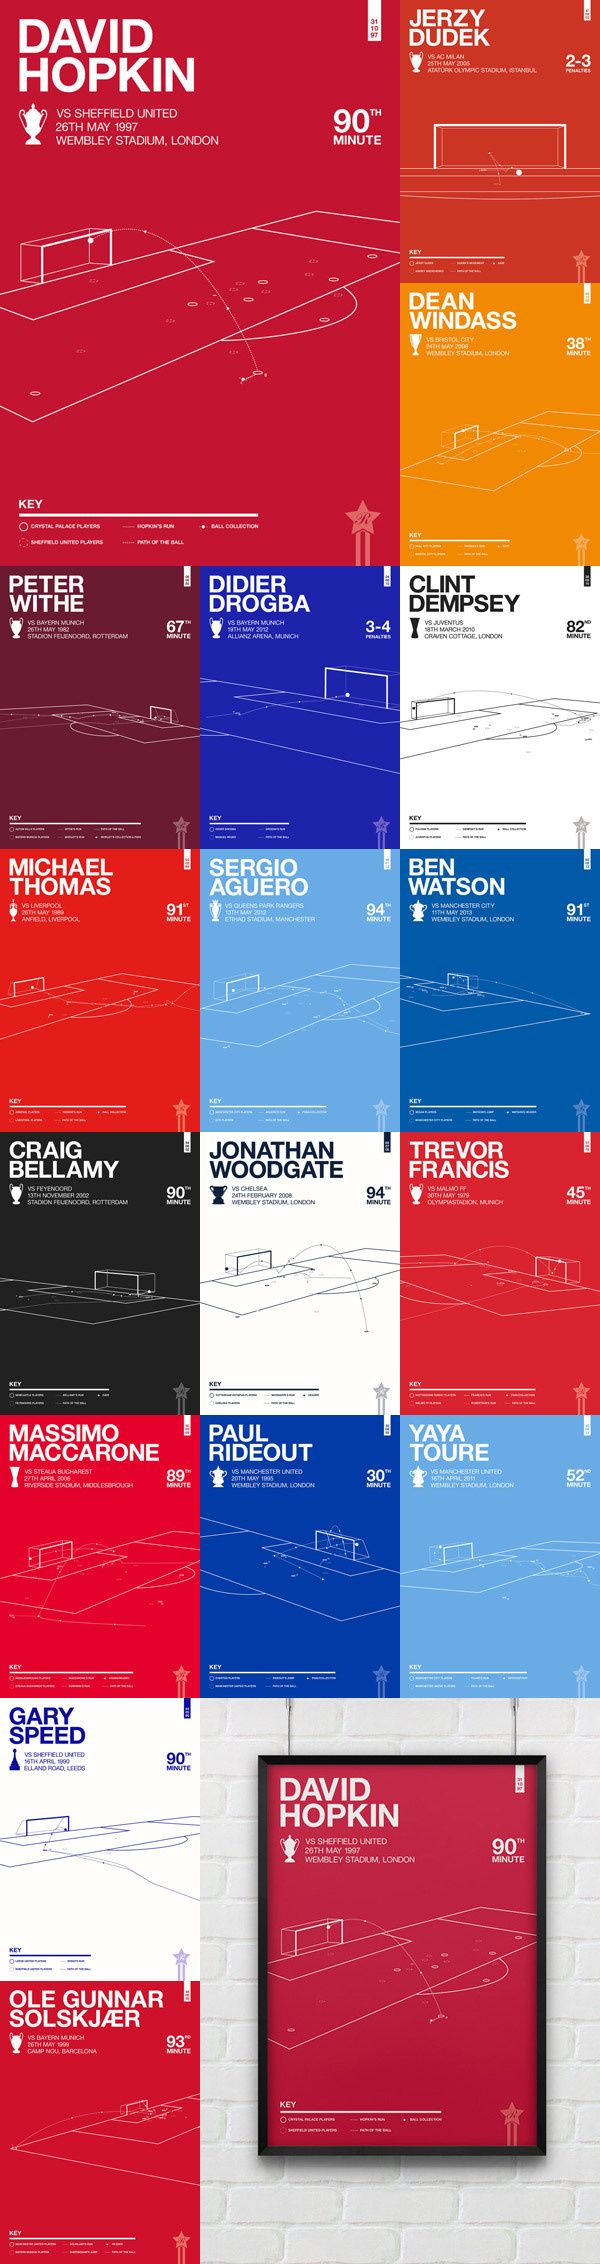 Collection of Graphic Prints for Iconic Football Moments Created by Rick Hincks in Posters